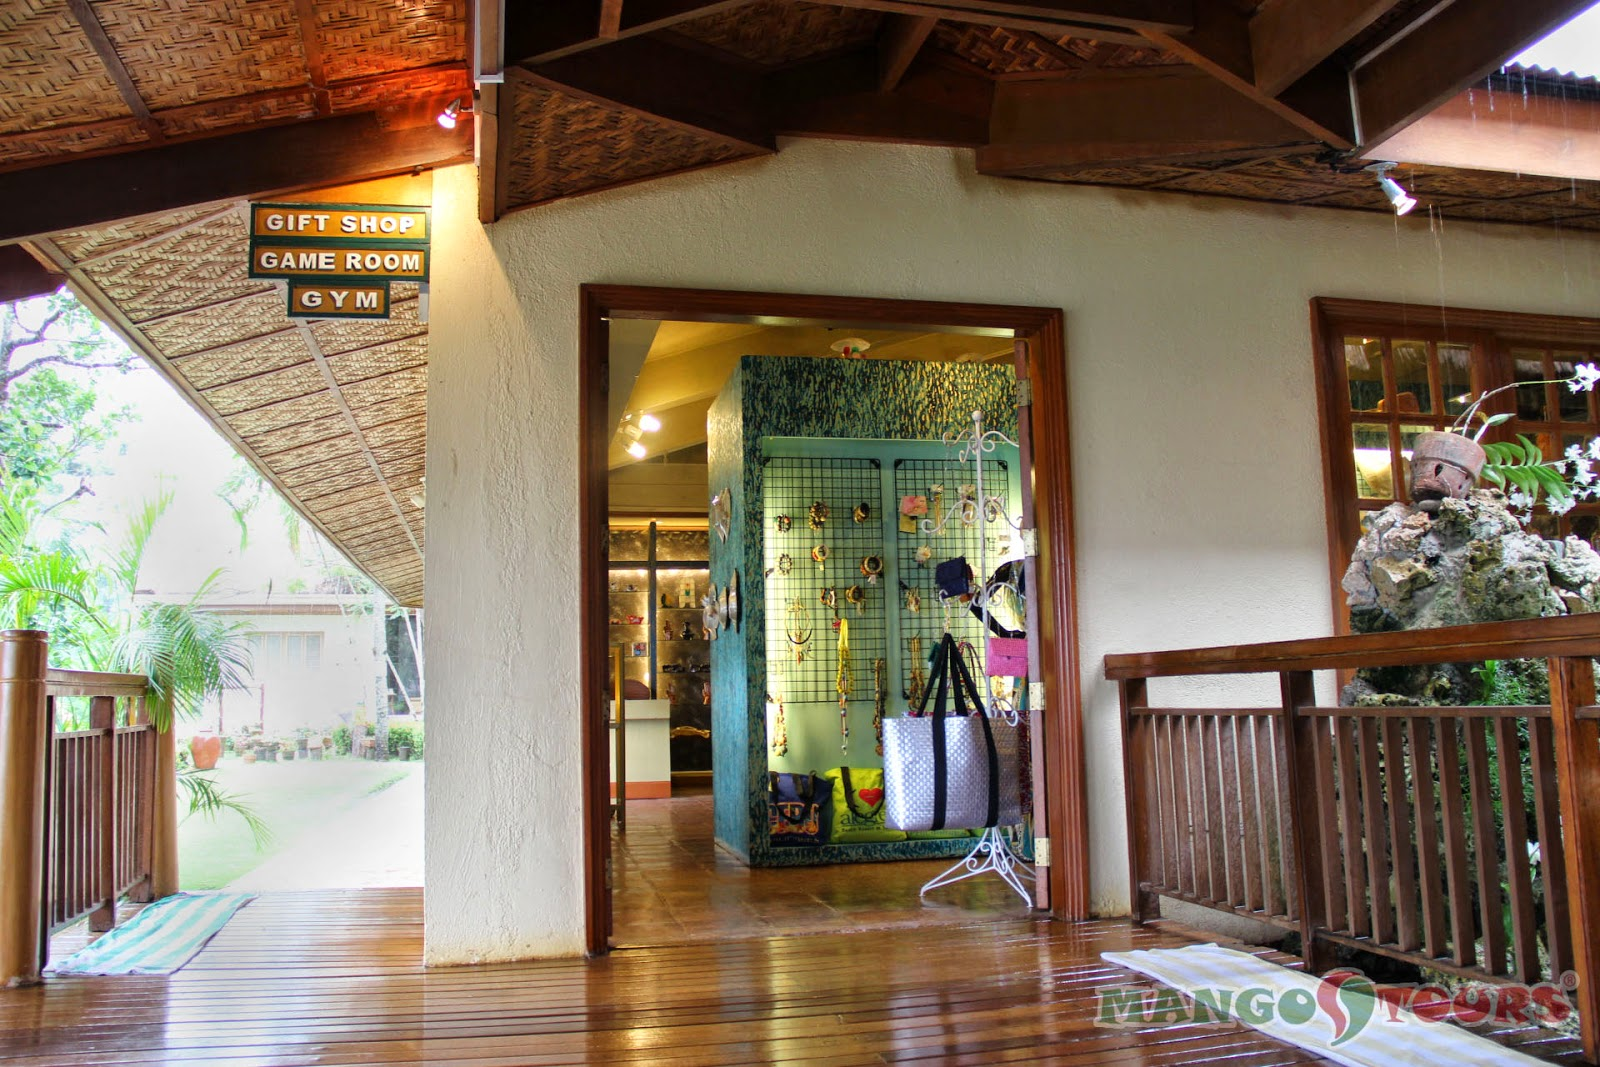 Mango Tours Philippines Alegre Beach Resort & Spa Gift Shop